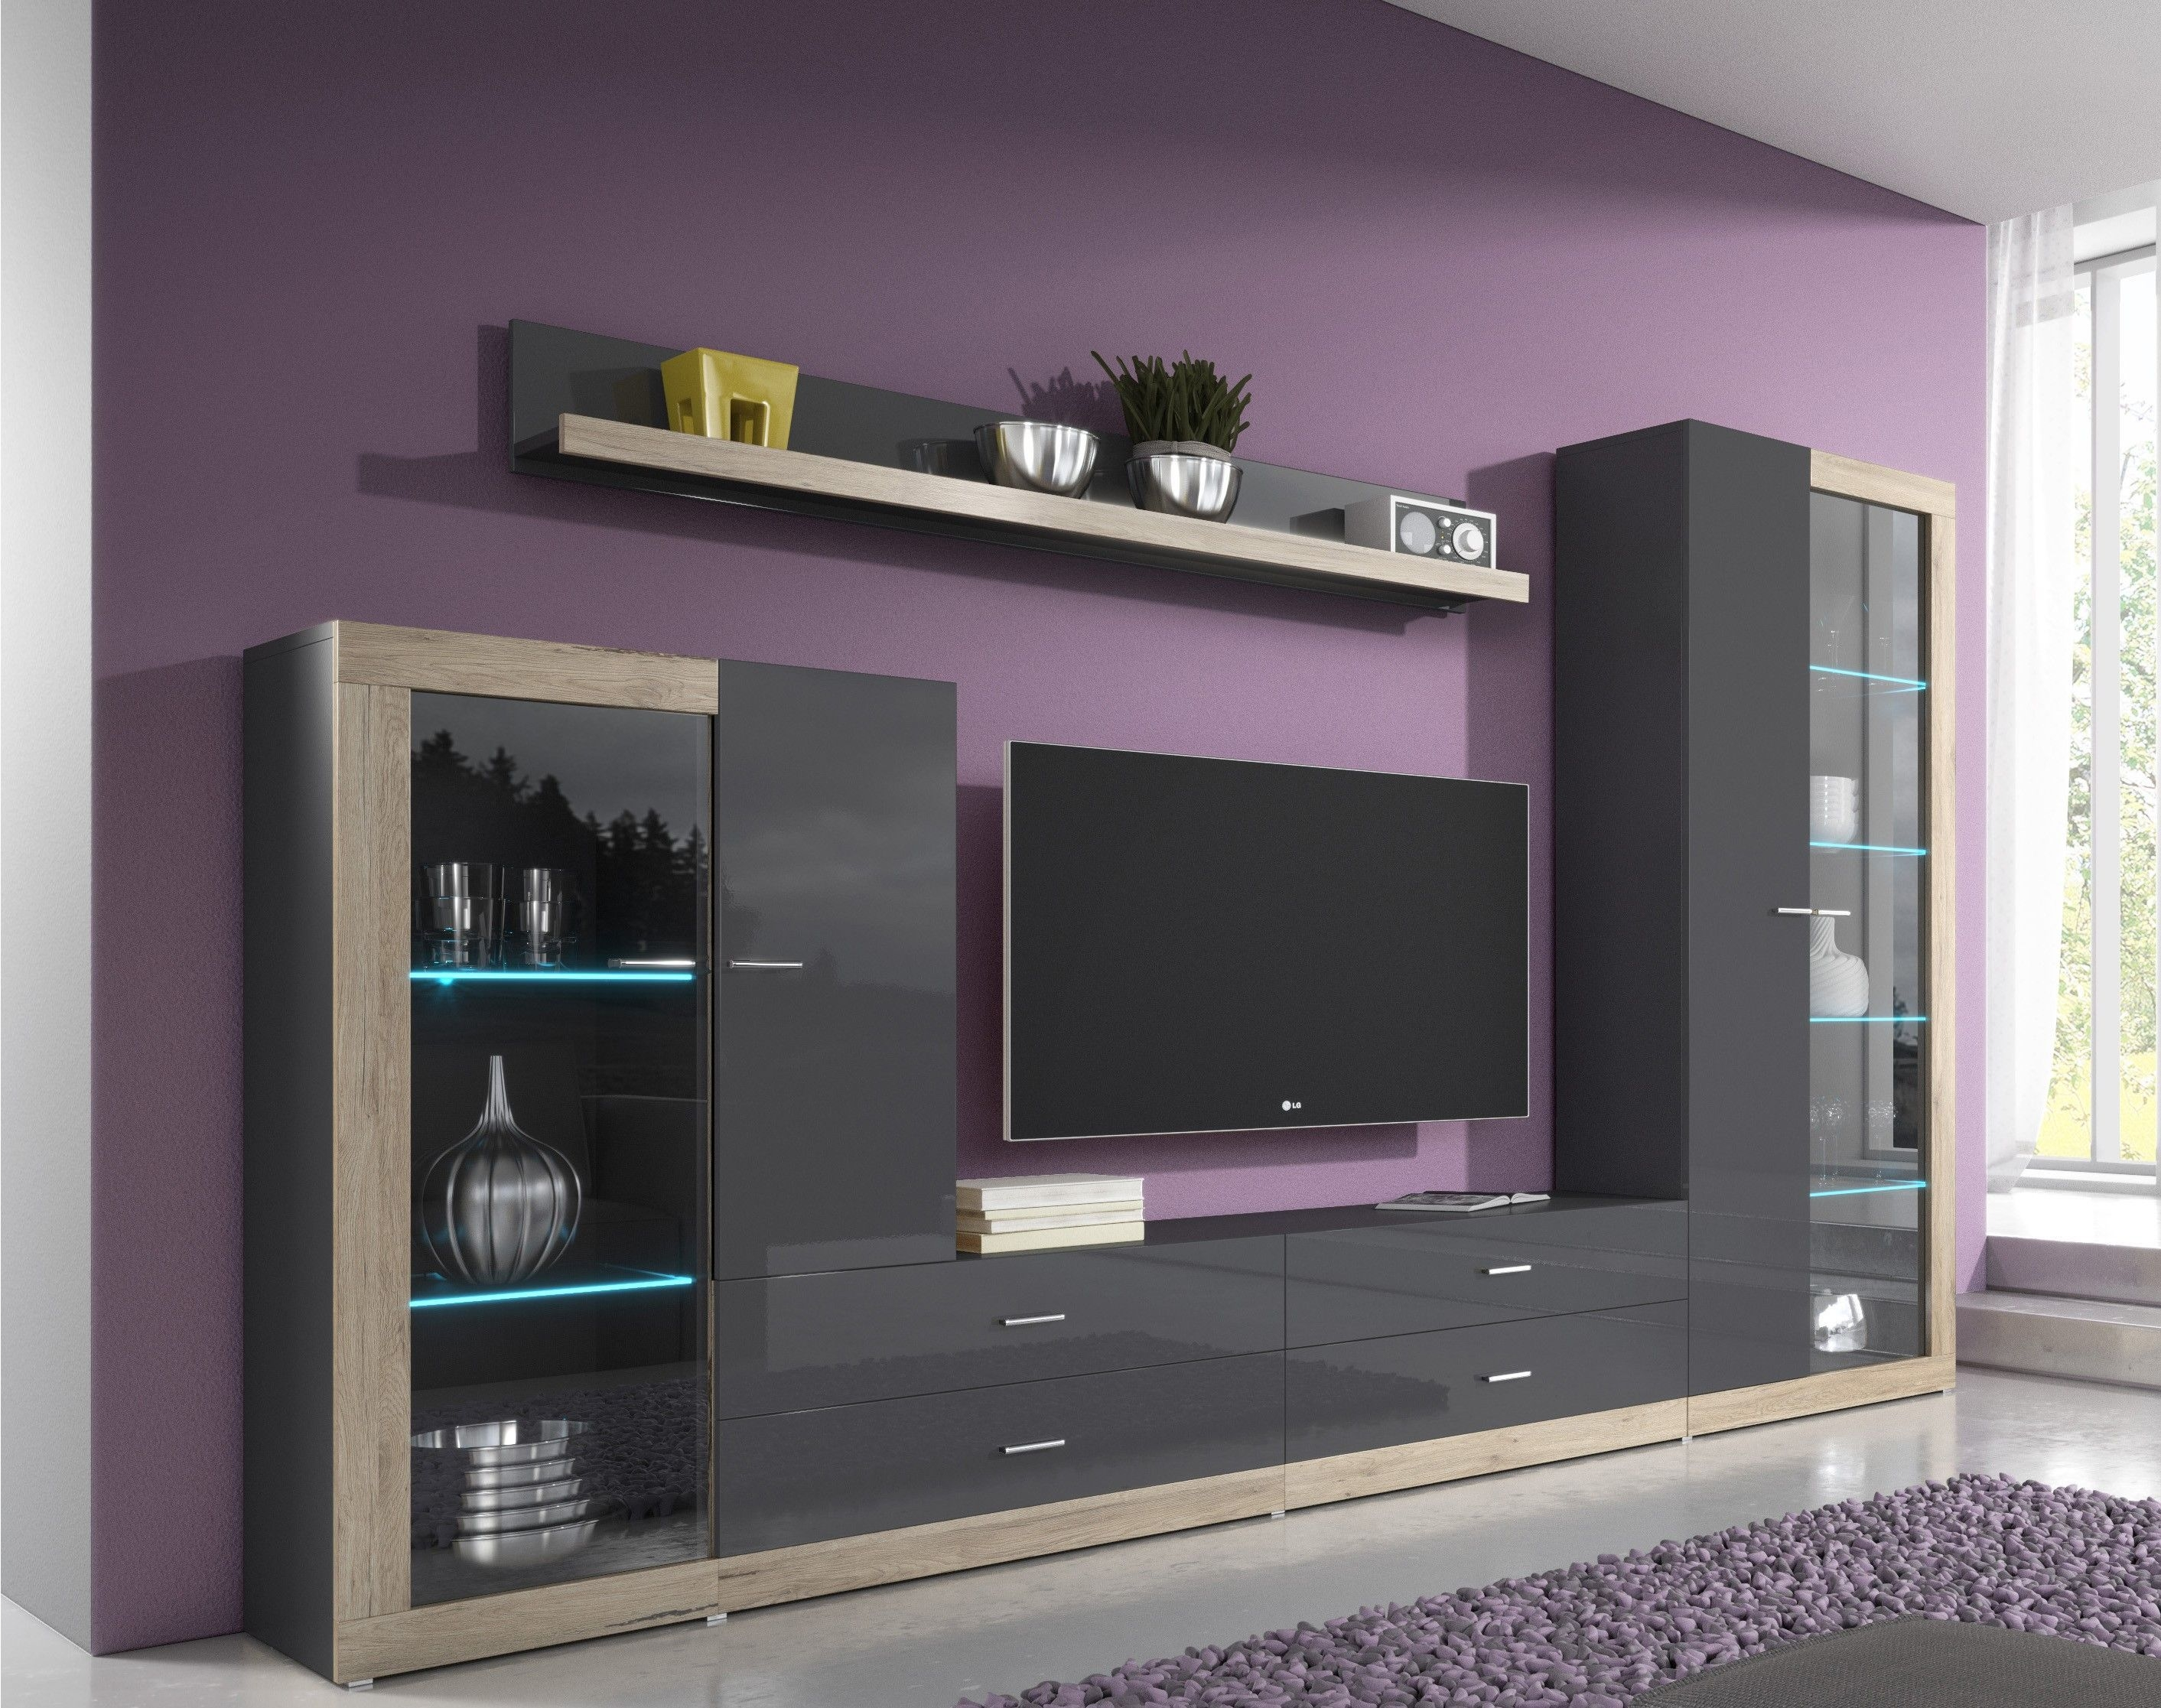 Entertainment Wall Units  Tv Unit Storage  Modern Wall Units  Living Room Wall Units  Design